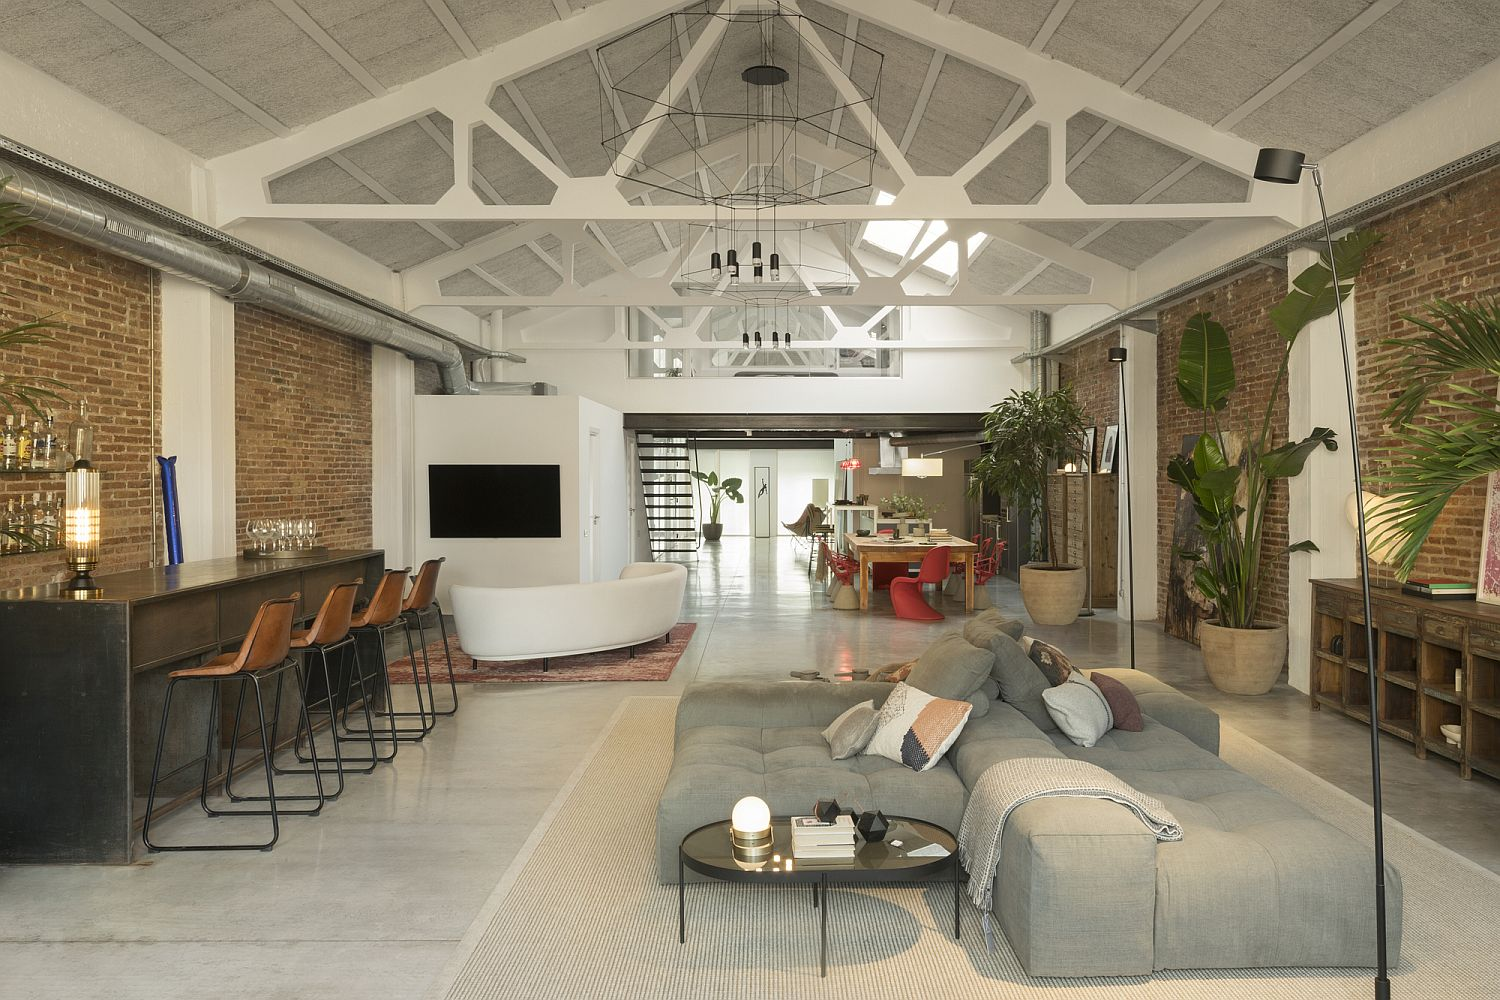 Delightful vaulted ceiling in white adds contemporary appeal to the industrial loft